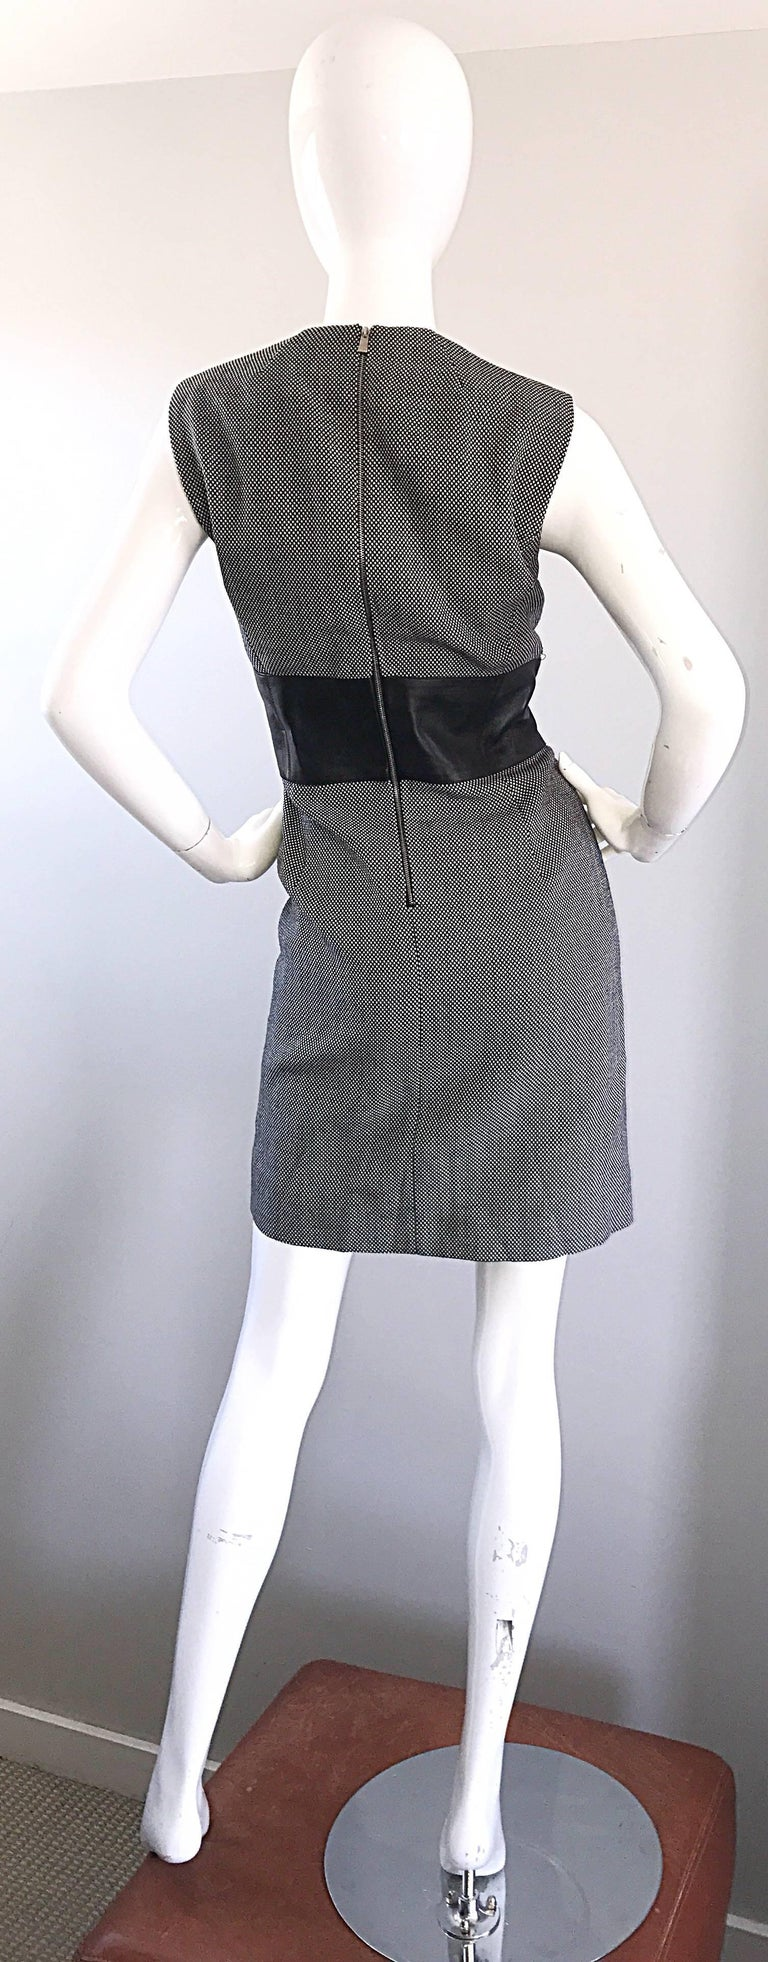 Women's New Michael Kors Collection Size 14 Black and White Wool + Leather Classic Dress For Sale